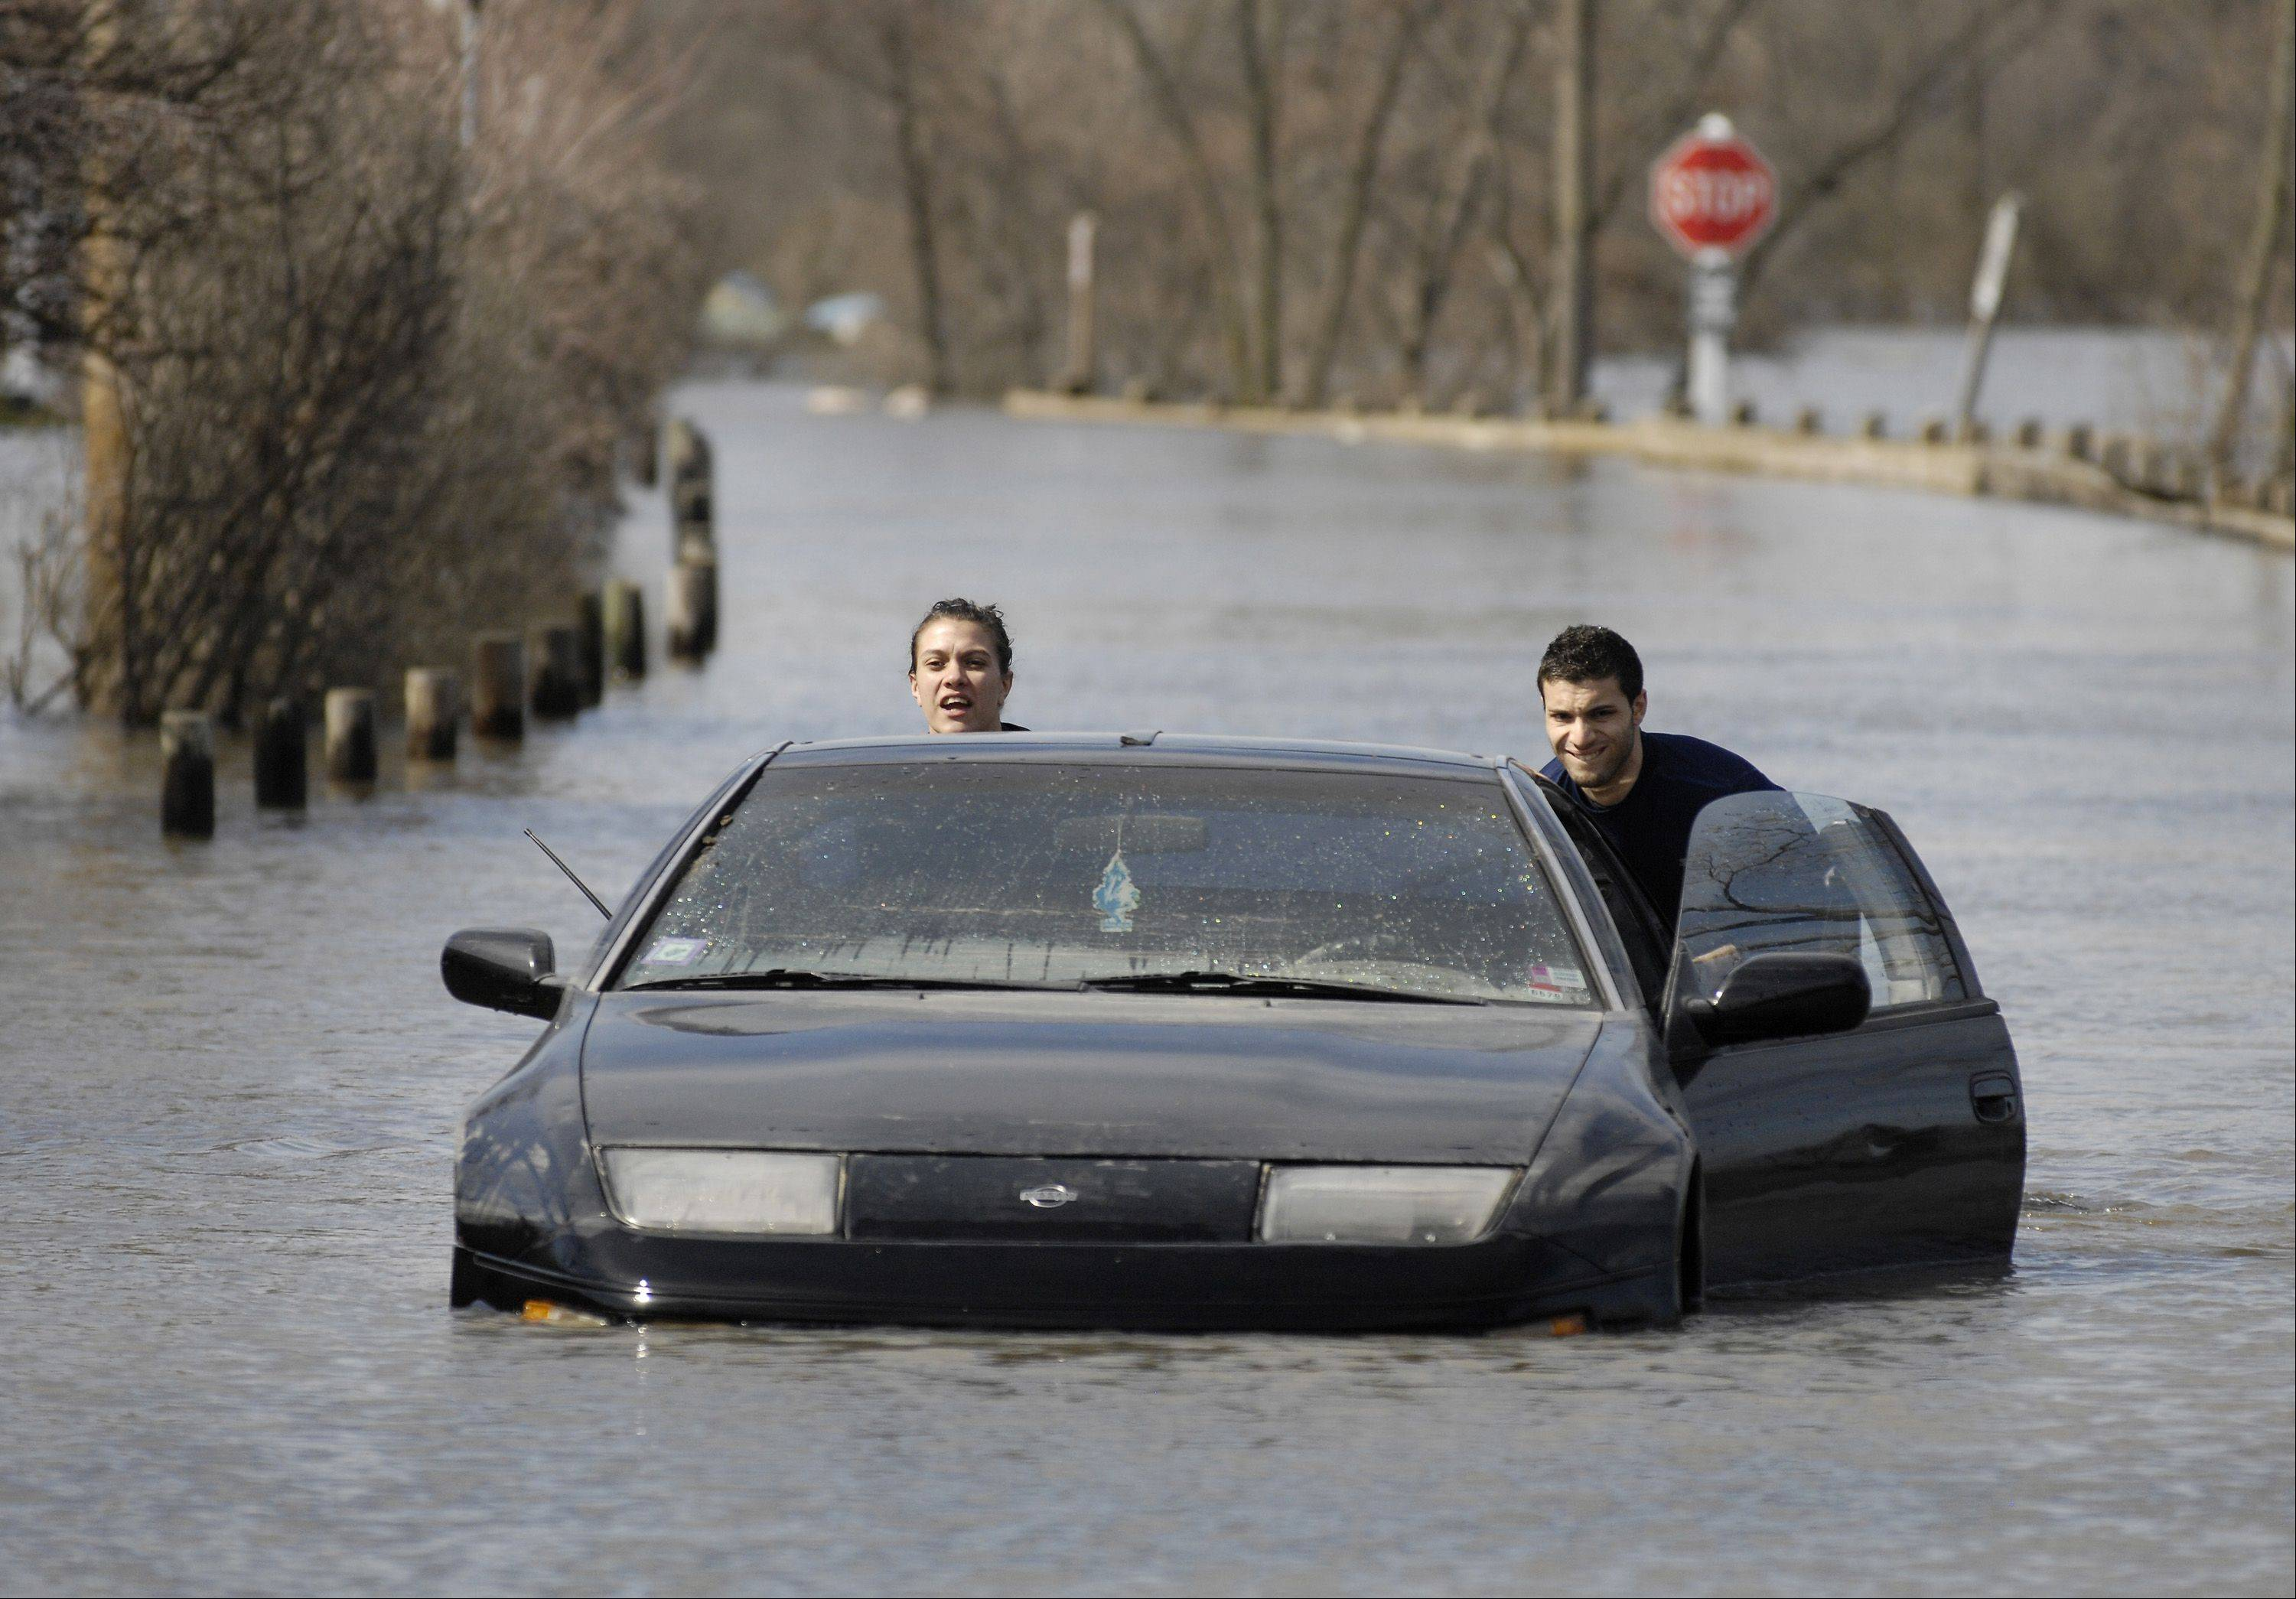 Ashley and Victor Atalla push their car through Lisle's Four Lakes neighborhood after April flooding devastated portions of DuPage County.